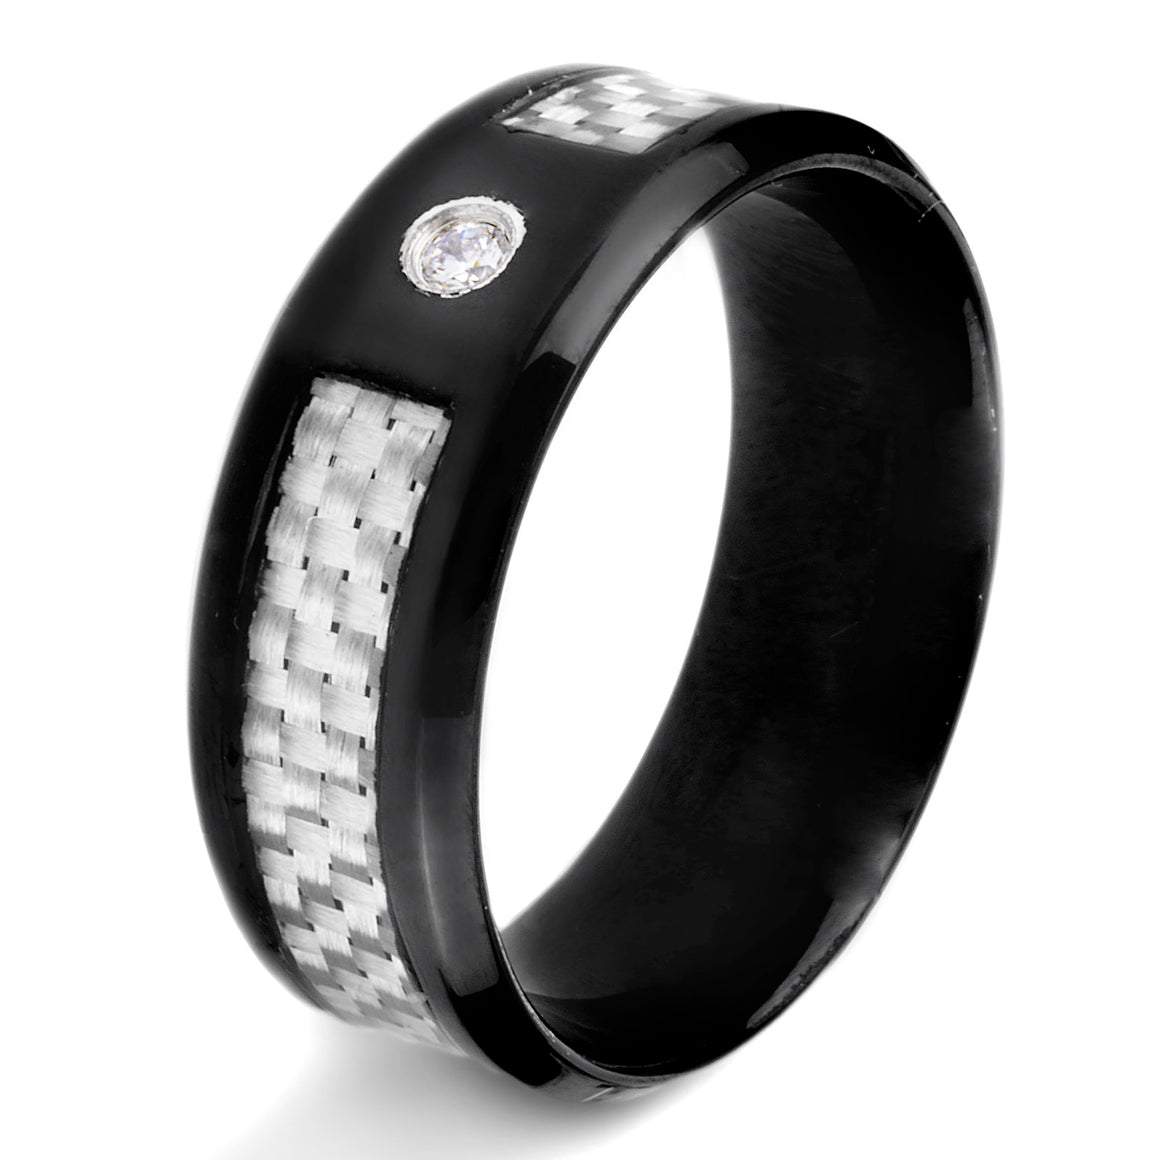 Crucible Black IP Stainless Steel High Polished White Carbon Fiber Cubic Zirconia Ring